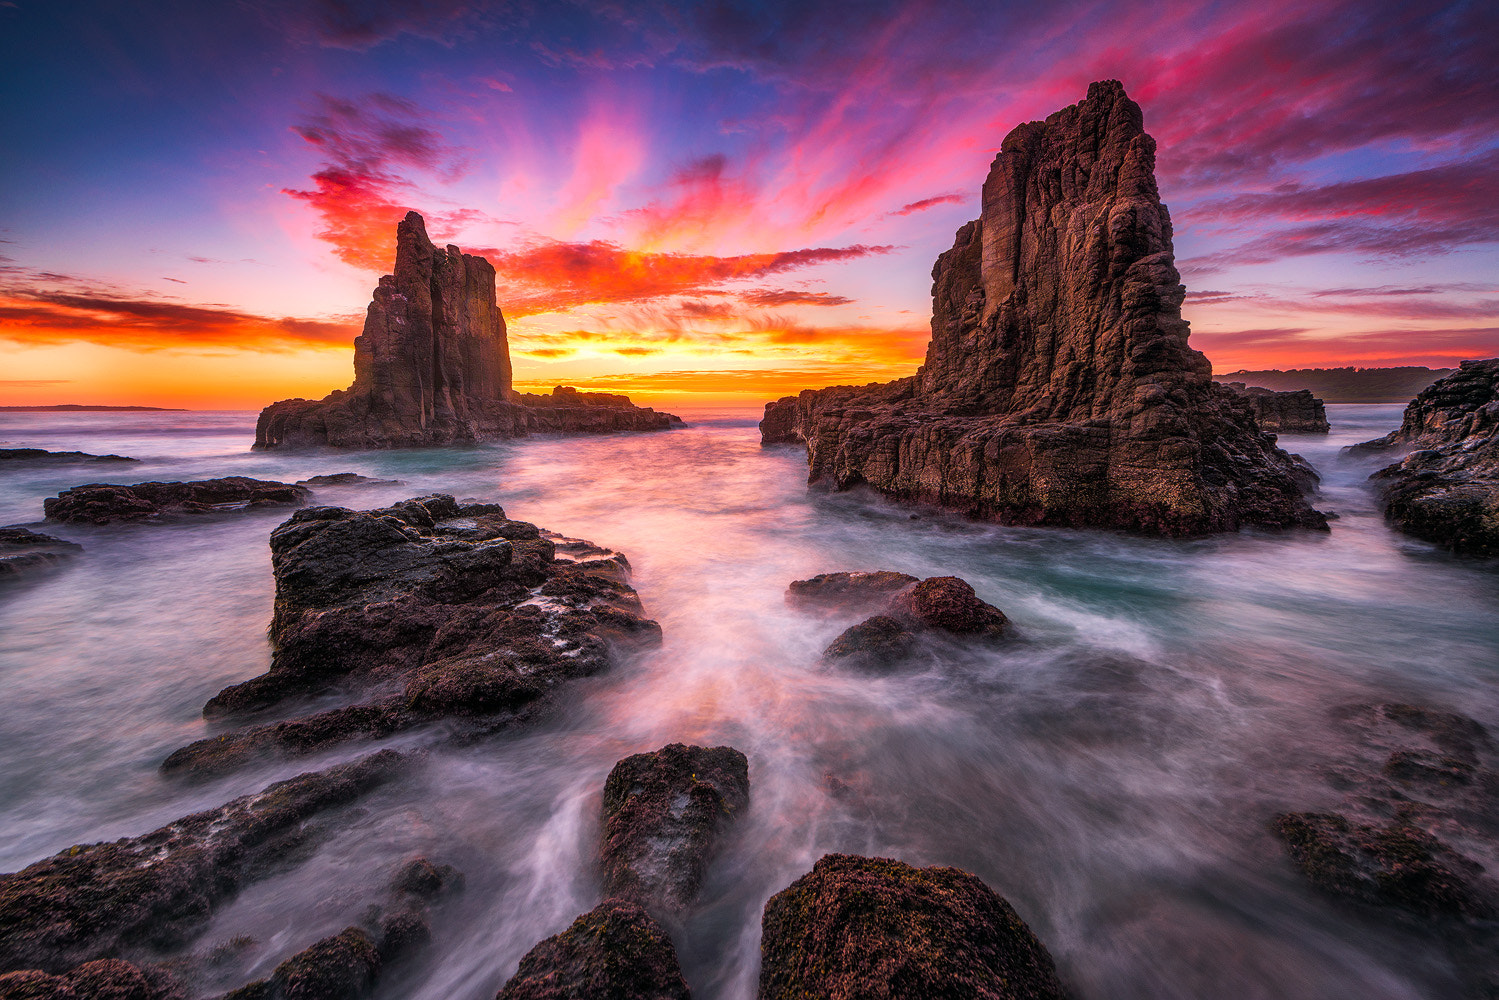 Photograph Magic Hour by Joshua Zhang on 500px